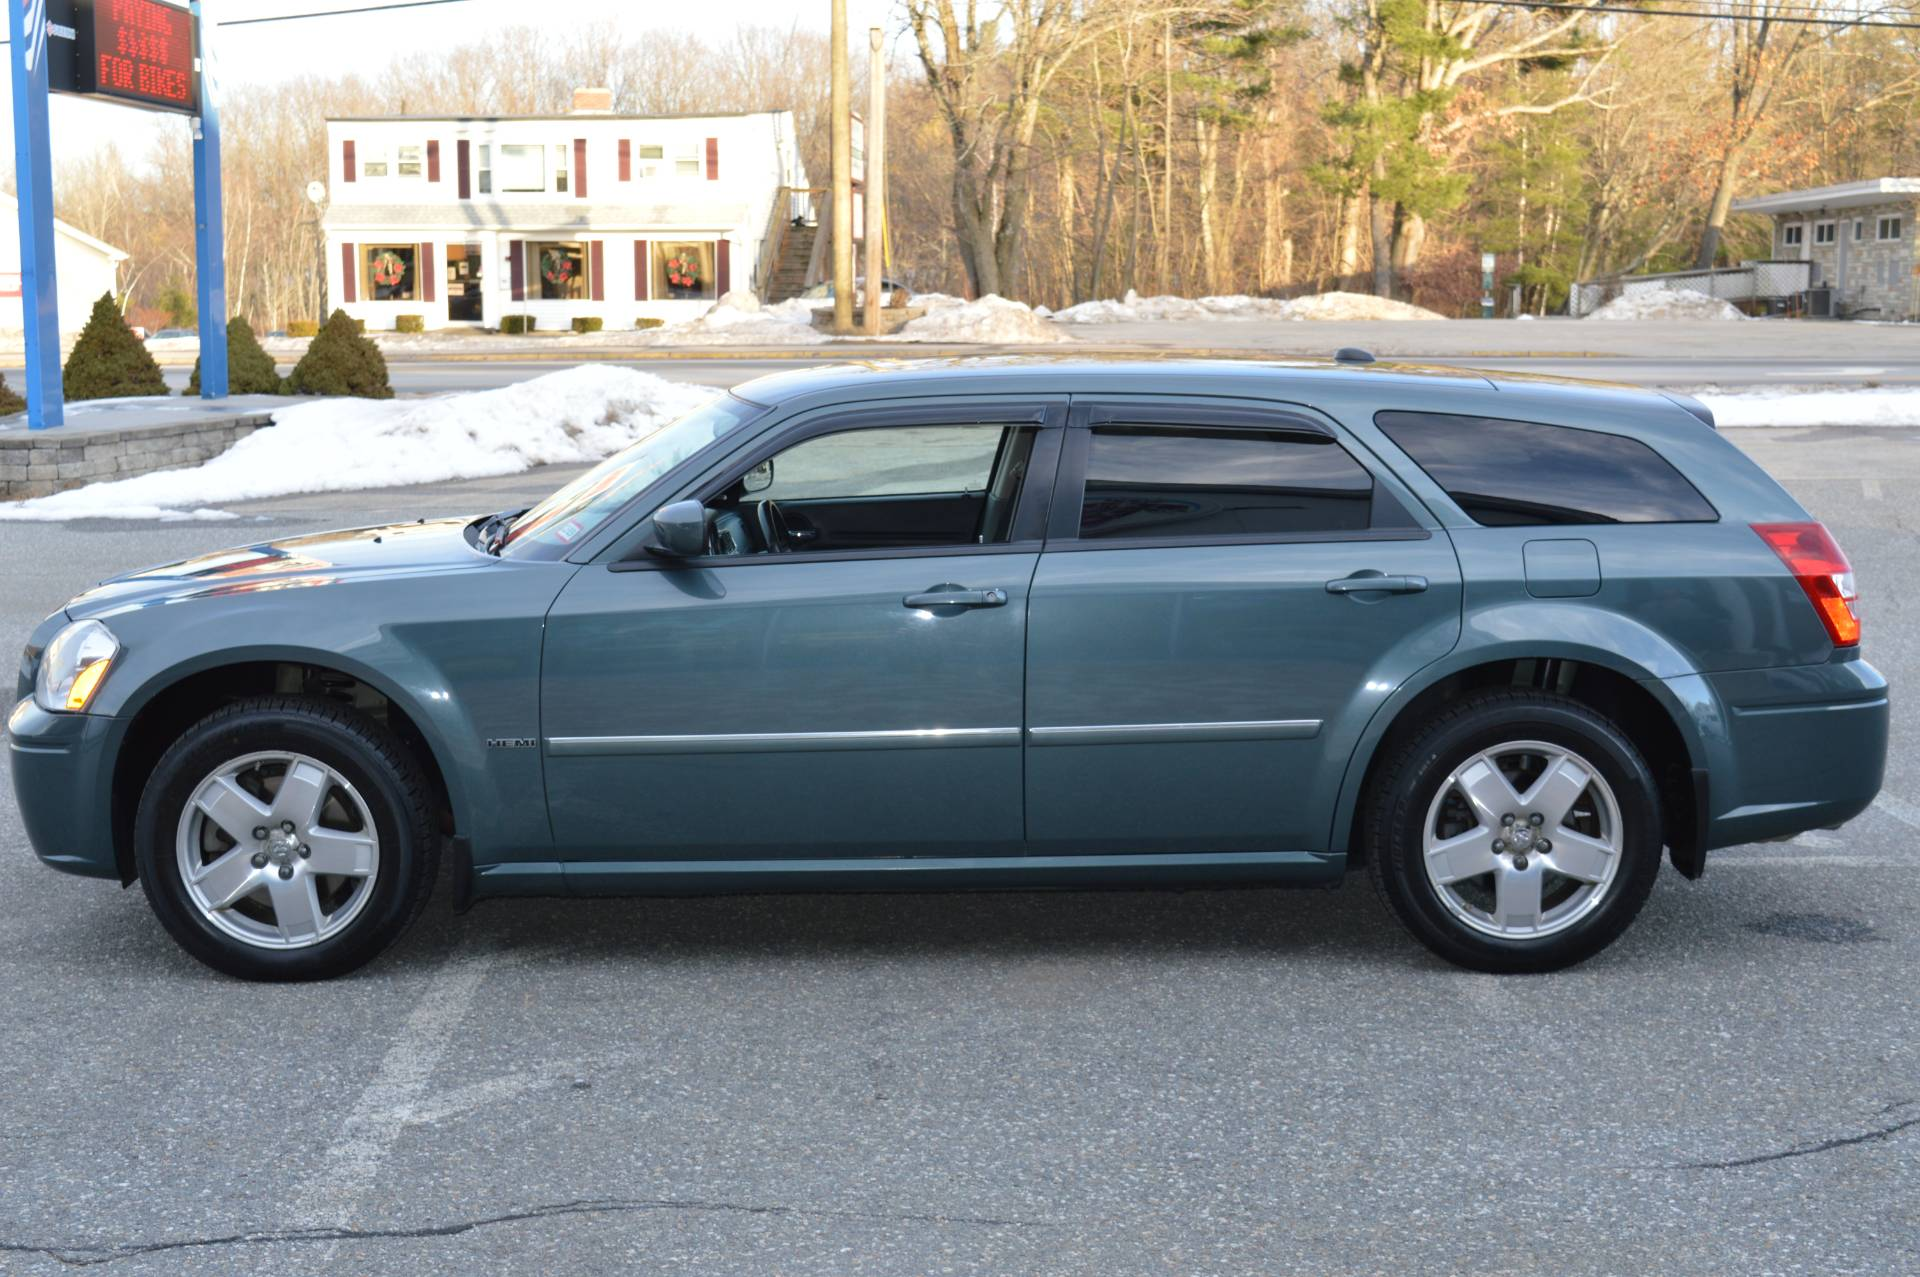 2006 Dodge MAGNUM R/T AWD in Derry, New Hampshire - Photo 1